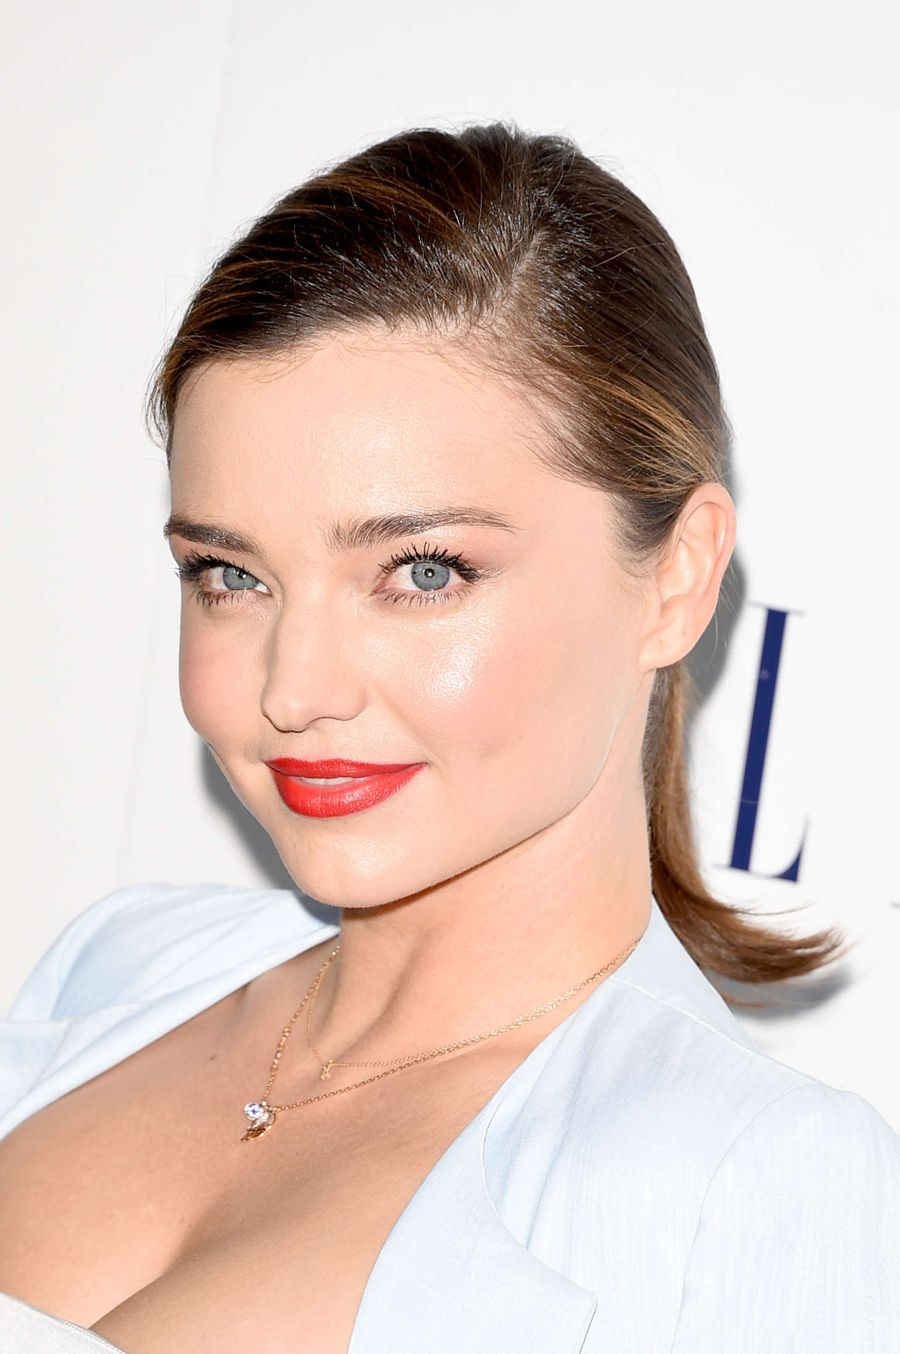 Miranda Kerr draws attention in a Bandage Crop Top